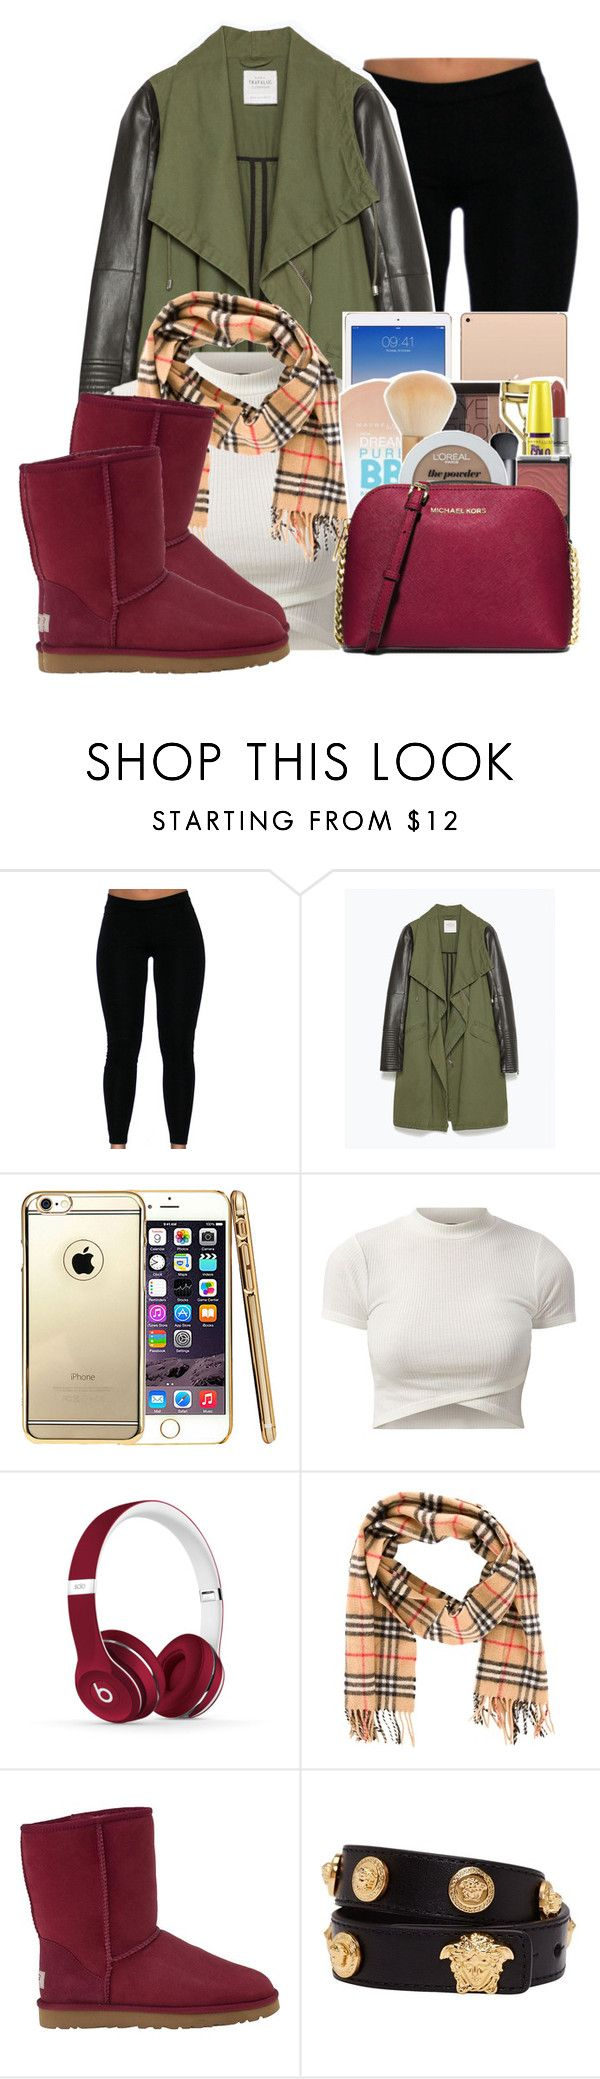 """""""Untitled #470"""" by stay-spifft ❤ liked on Polyvore featuring beauty, Zara, Beats by Dr. Dre, Burberry, UGG Australia, Versace and MICHAEL Michael Kors"""